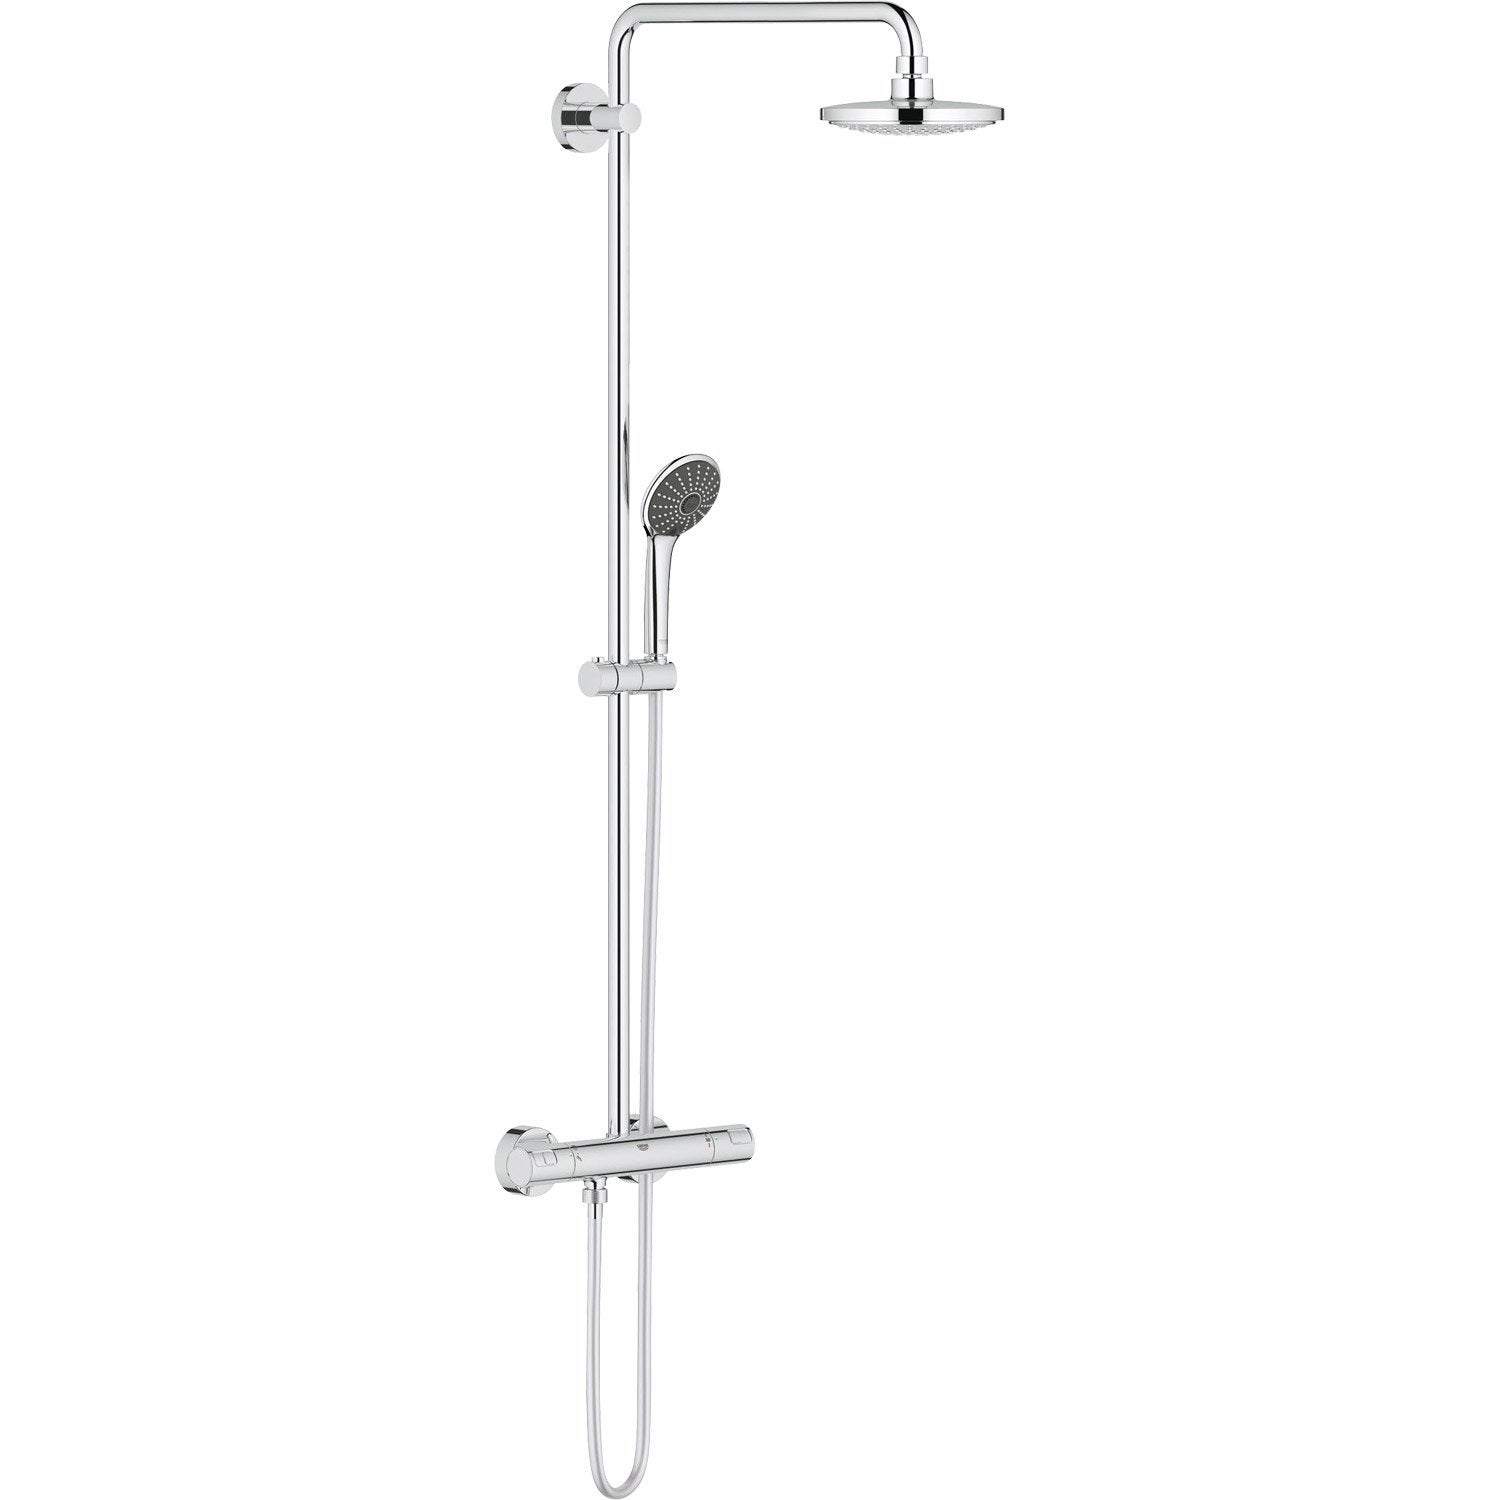 Colonne de douche avec robinetterie grohe vitalio system for Mitigeur grohe leroy merlin